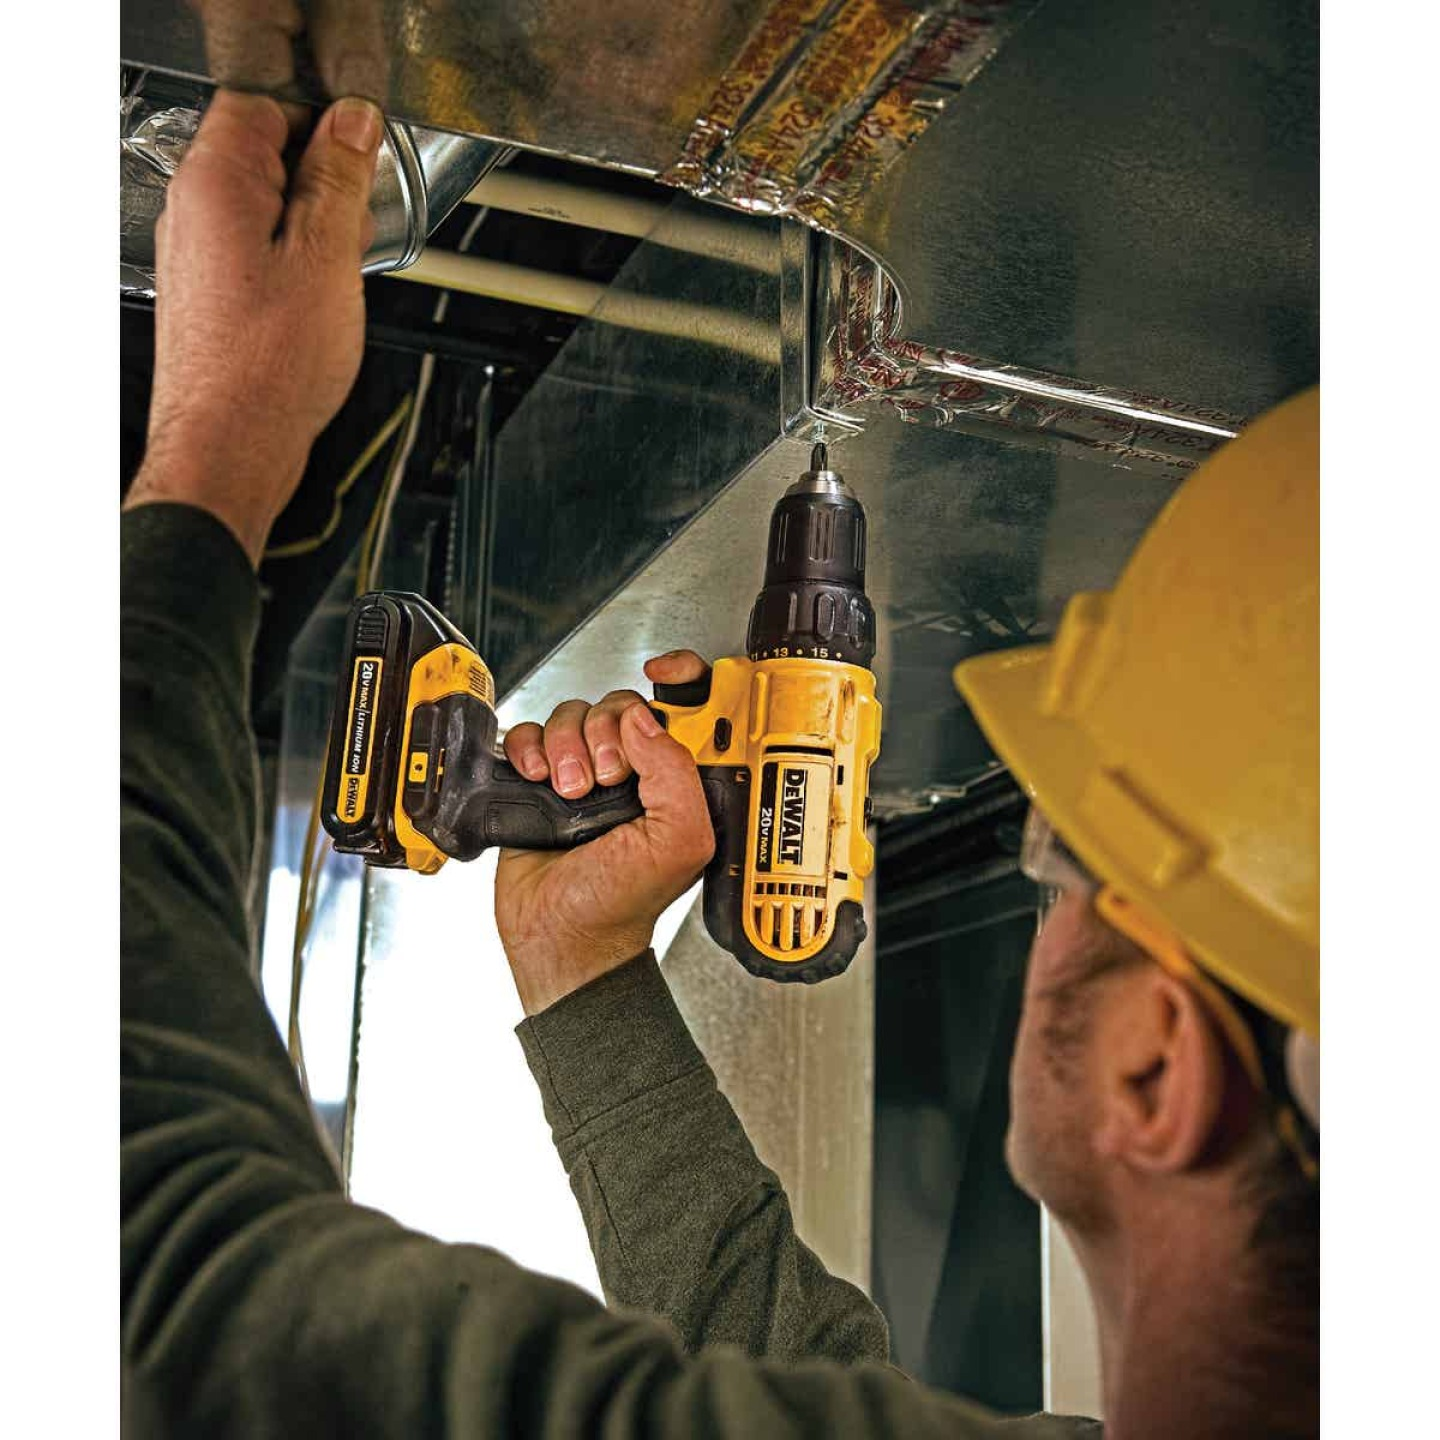 DeWalt 20 Volt MAX Lithium-Ion 1/2 In. Cordless Drill Kit Image 4